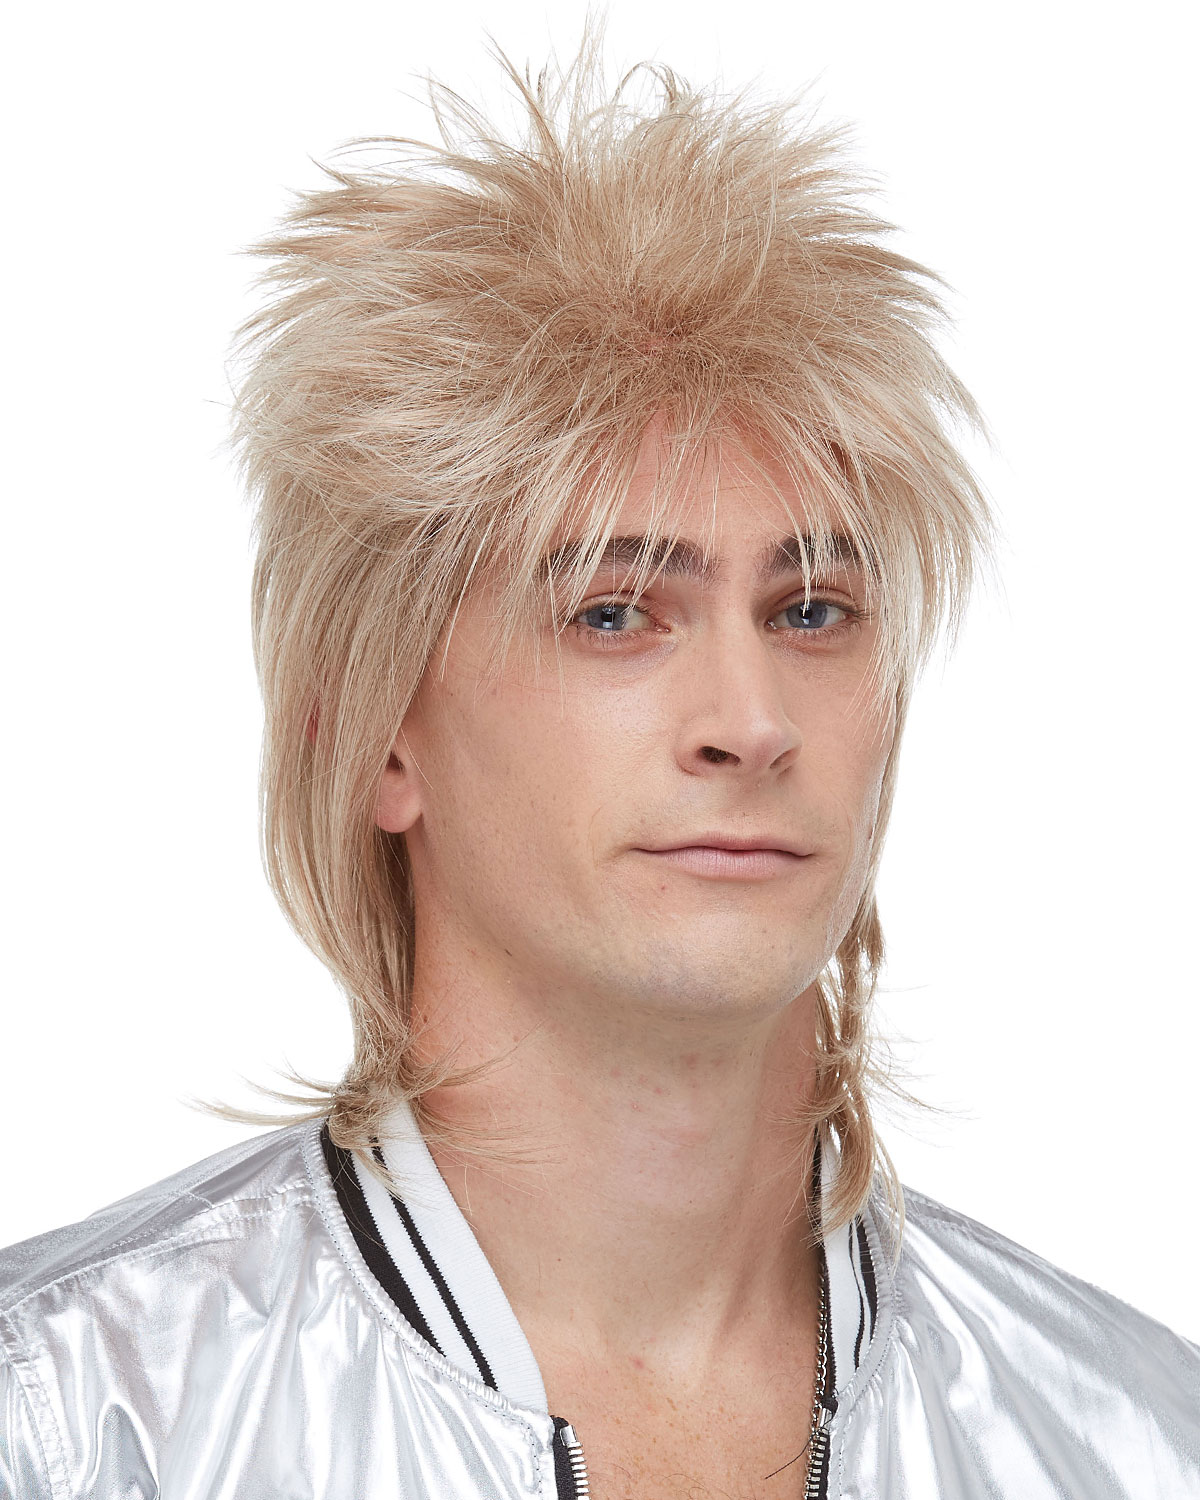 British Rockstar Costume Wig by Characters  sc 1 st  ABC Wigs & Characters Halloween Costume Wigs | ABC Wigs®